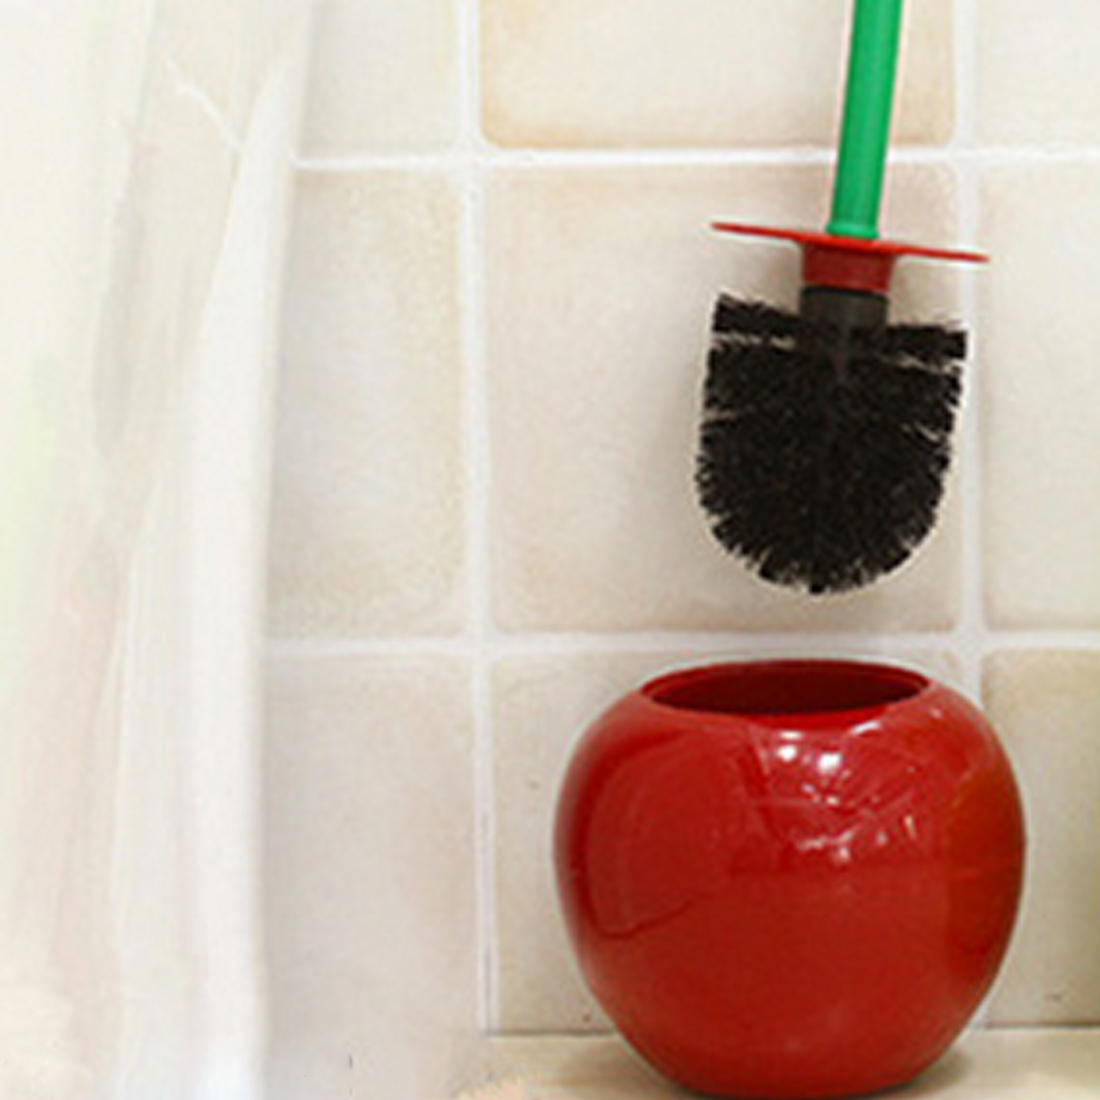 Aliexpress.com : Buy Welcomed Lovely Cherry Lavatory Brush Cherry ...